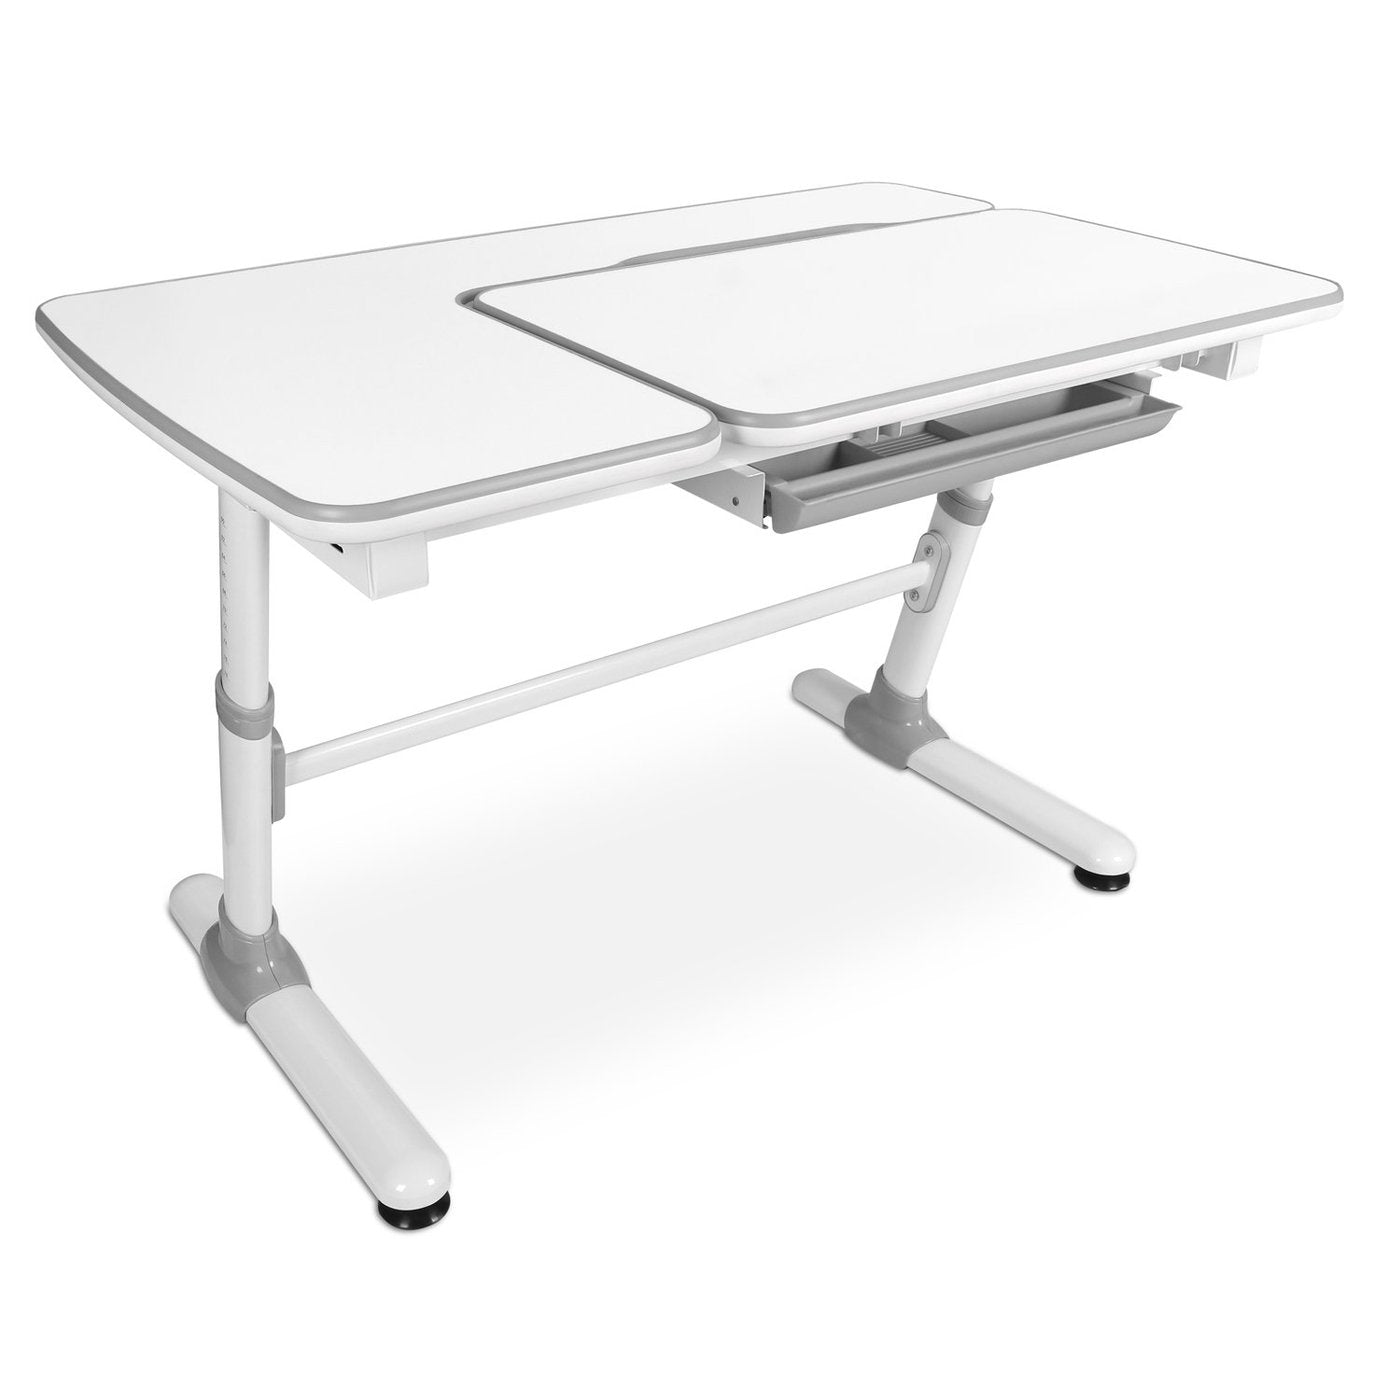 Mount-It! - Children's Desk w/ Tilting Desktop & Drawer - White - myergodesk